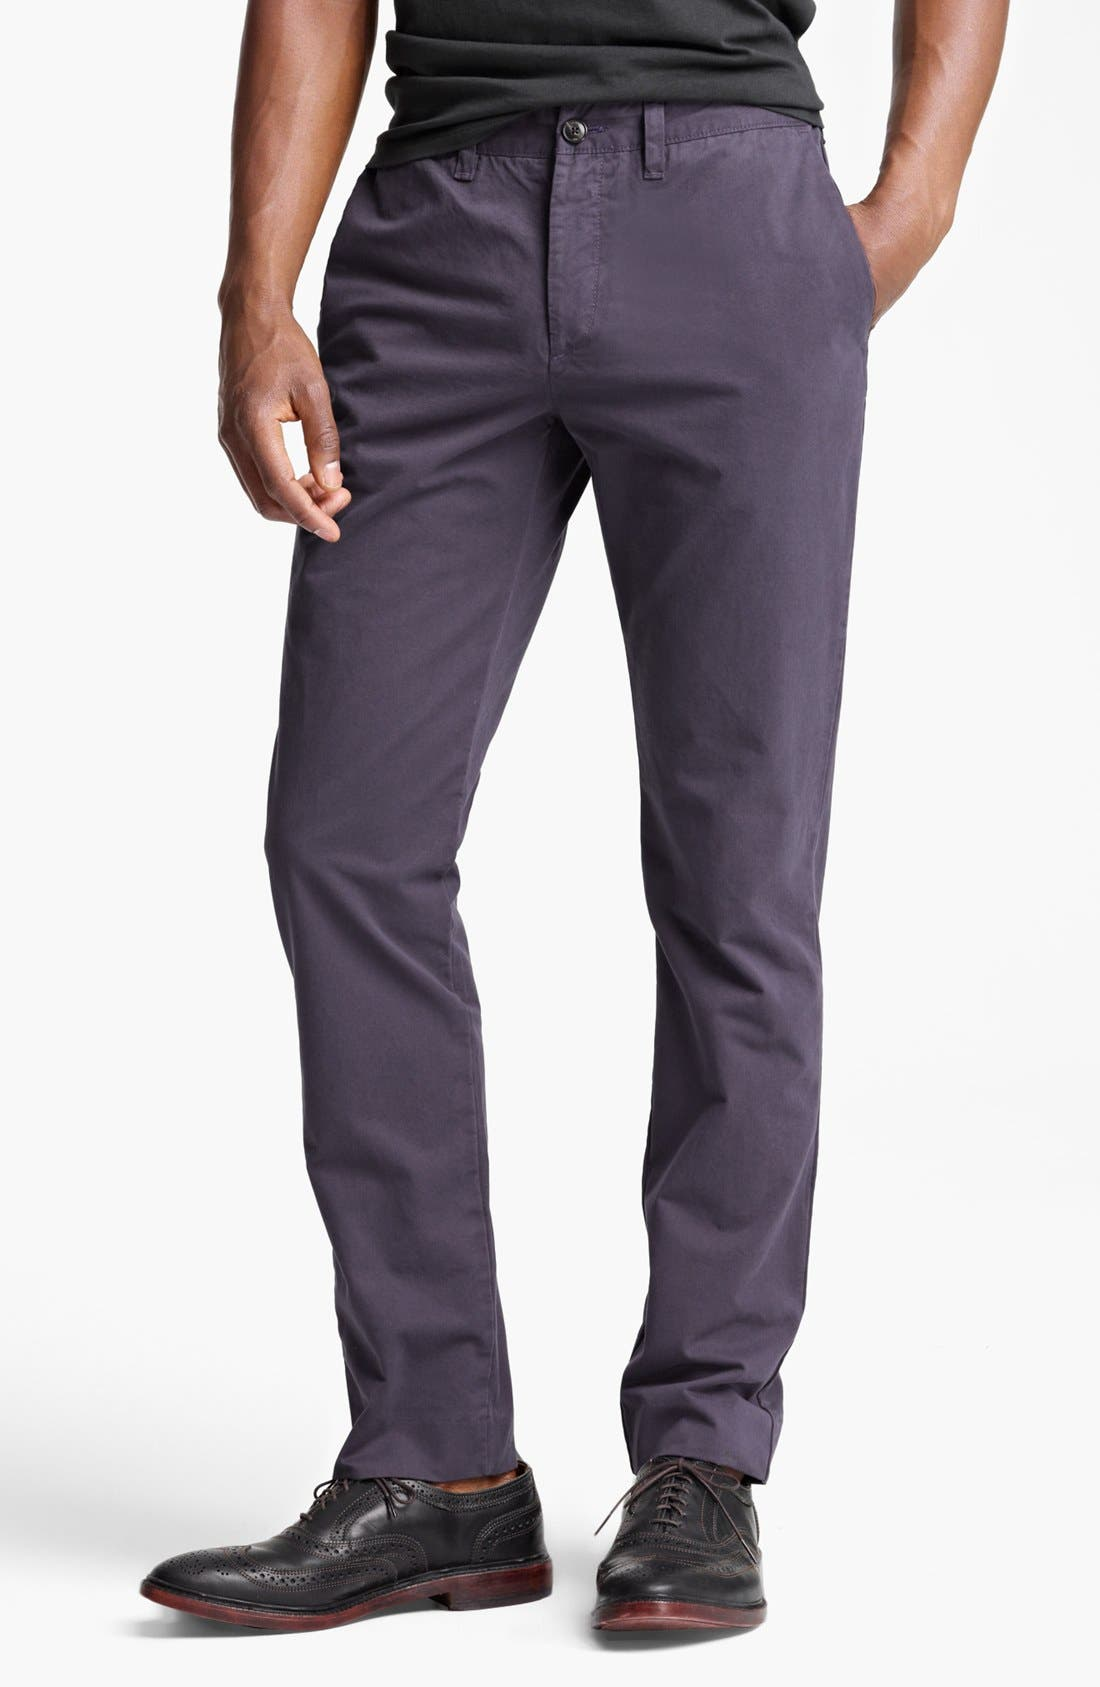 Alternate Image 1 Selected - Paul Smith Jeans Slim Fit Pants